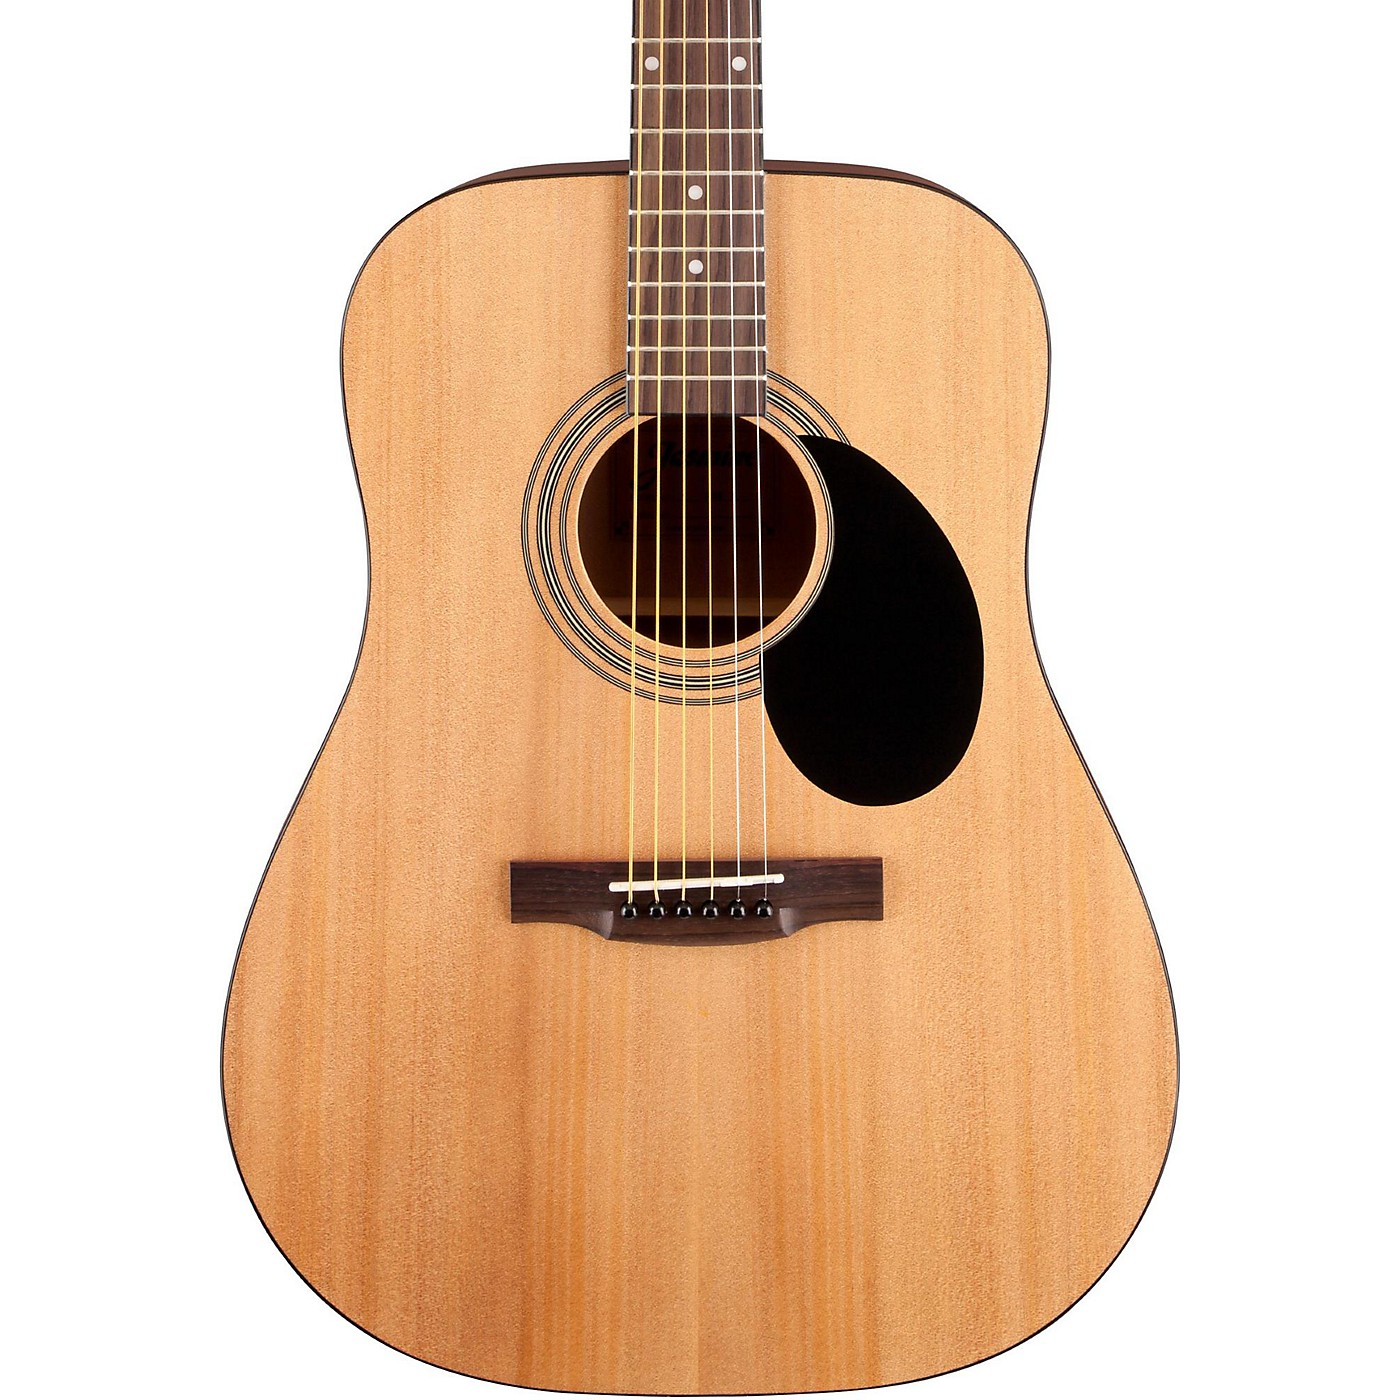 Jasmine S-35 Dreadnought Acoustic Guitar thumbnail